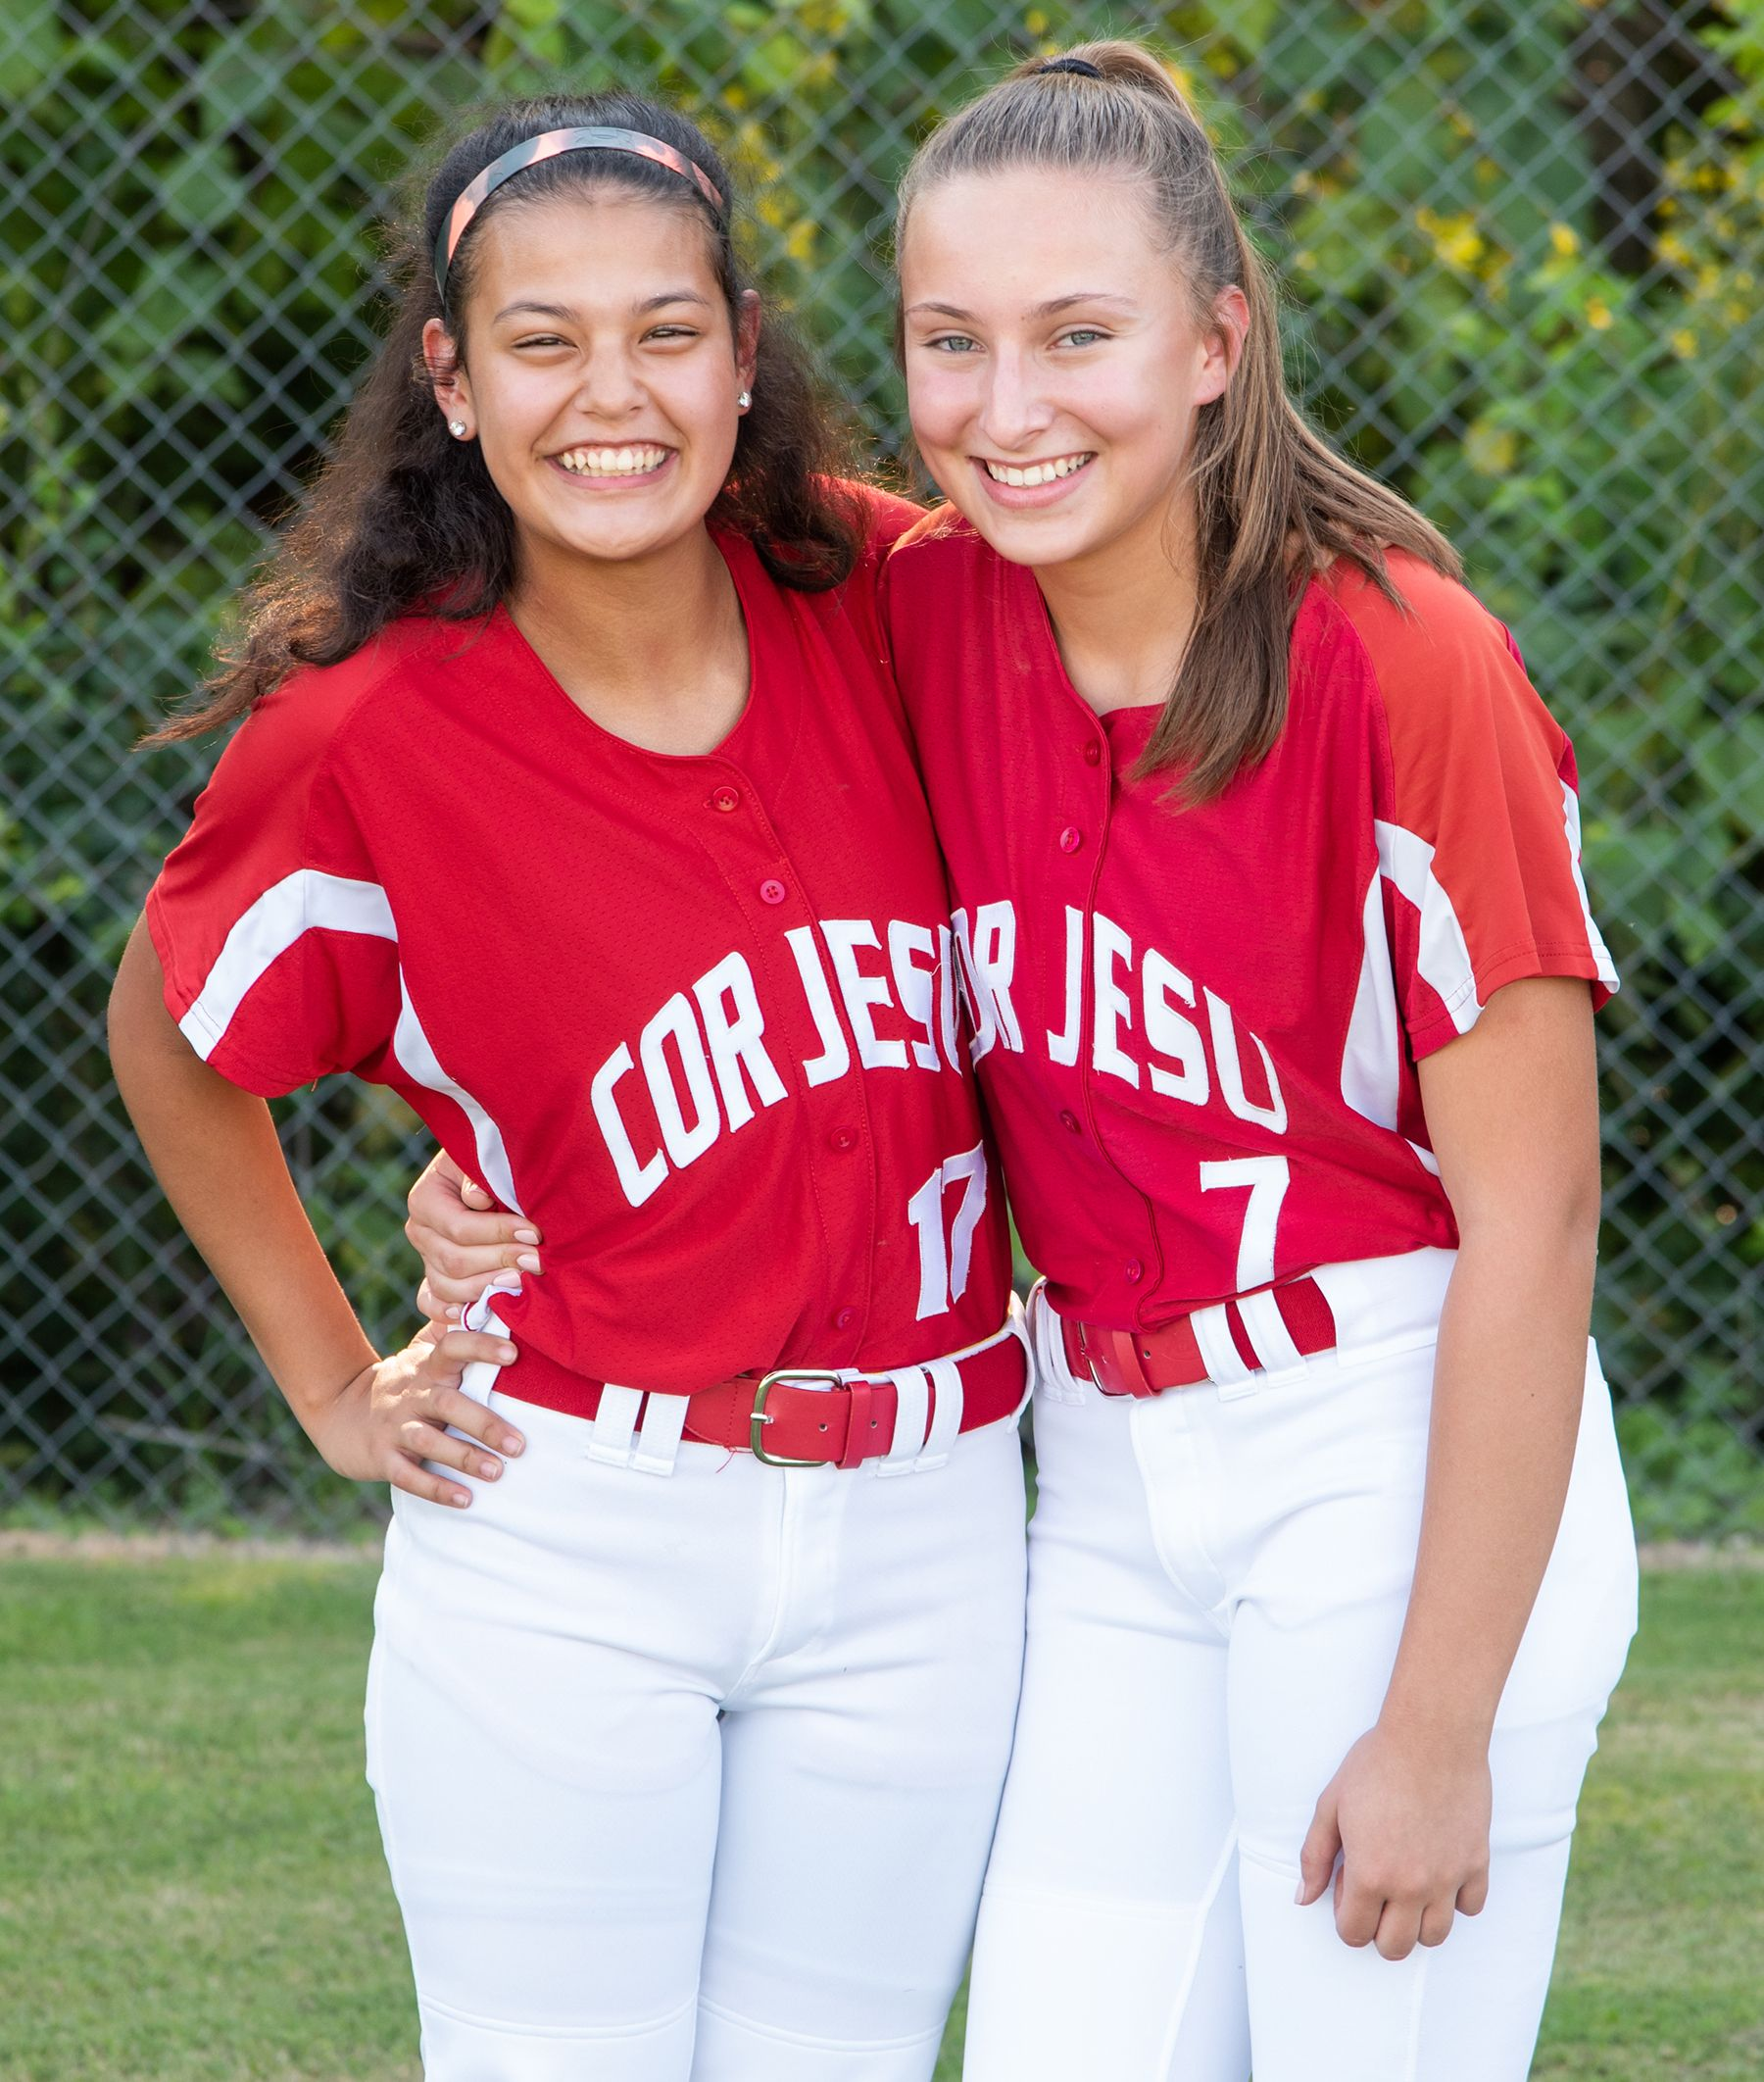 Cor Jesu athletes are friends off the field